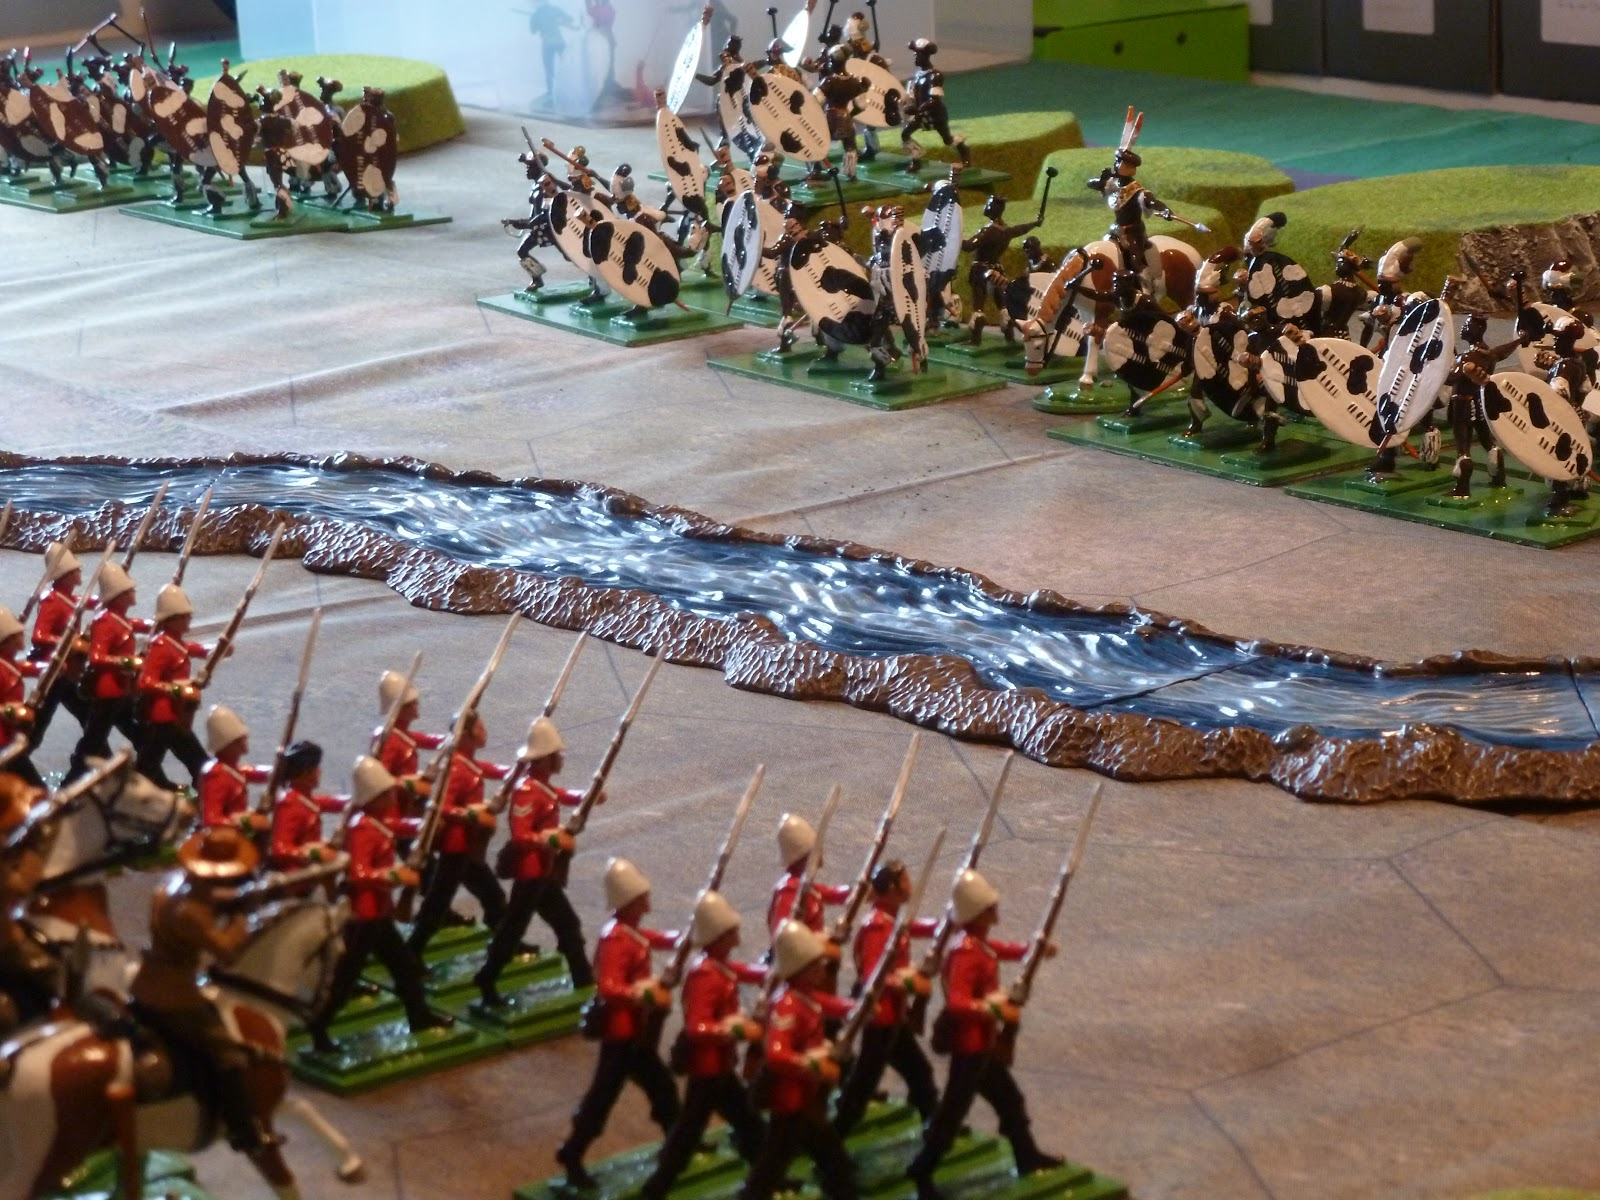 Collecting Toy Soldiers: Battle Cry Isandlwana with 54mm toy soldiers